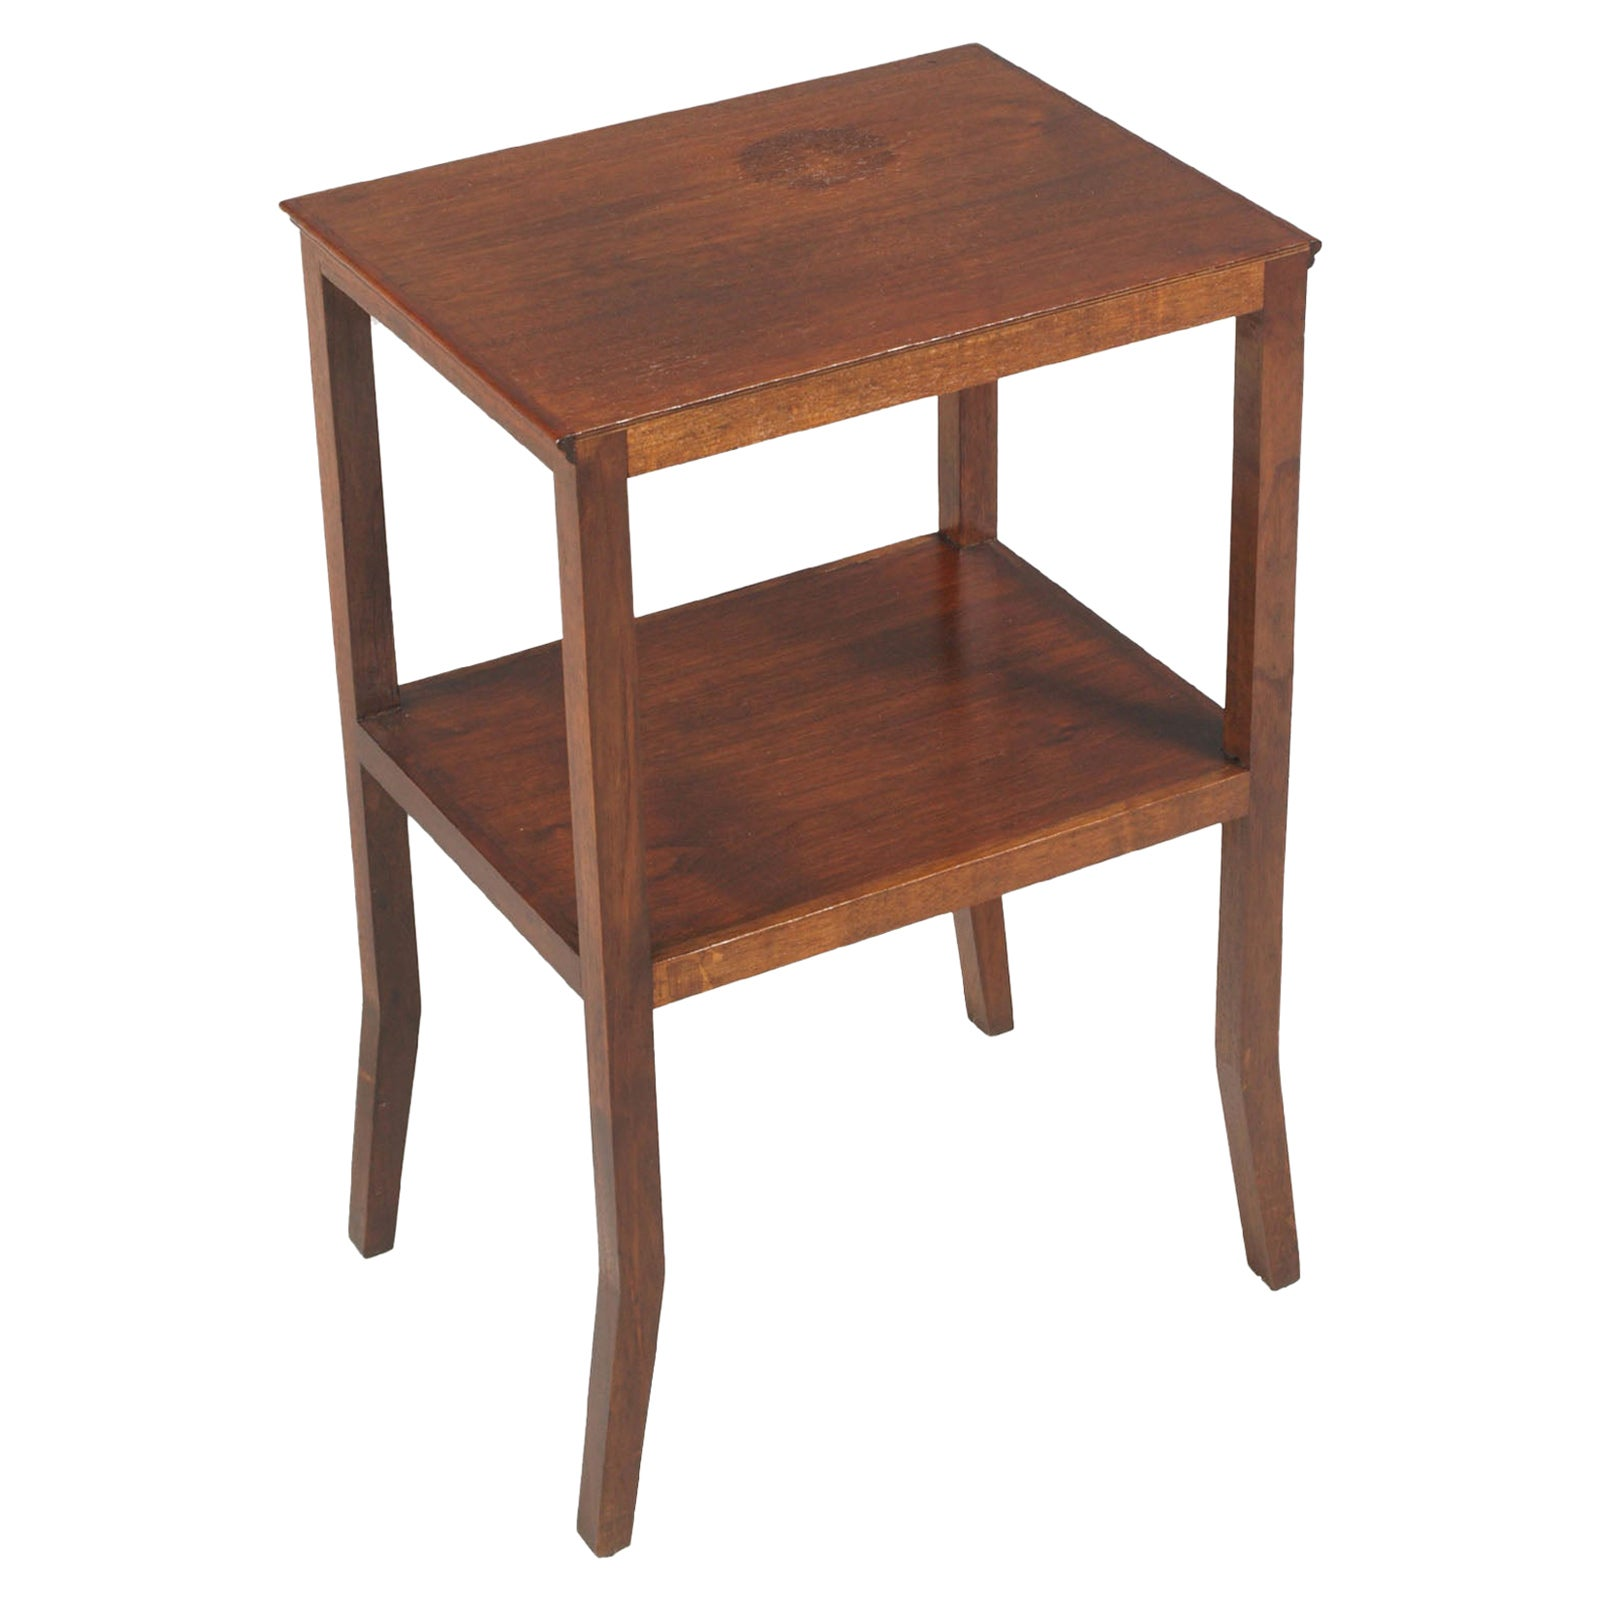 1910s Art Nouveau Side Table Coffee Table in Walnut Restored and Wax-Polished